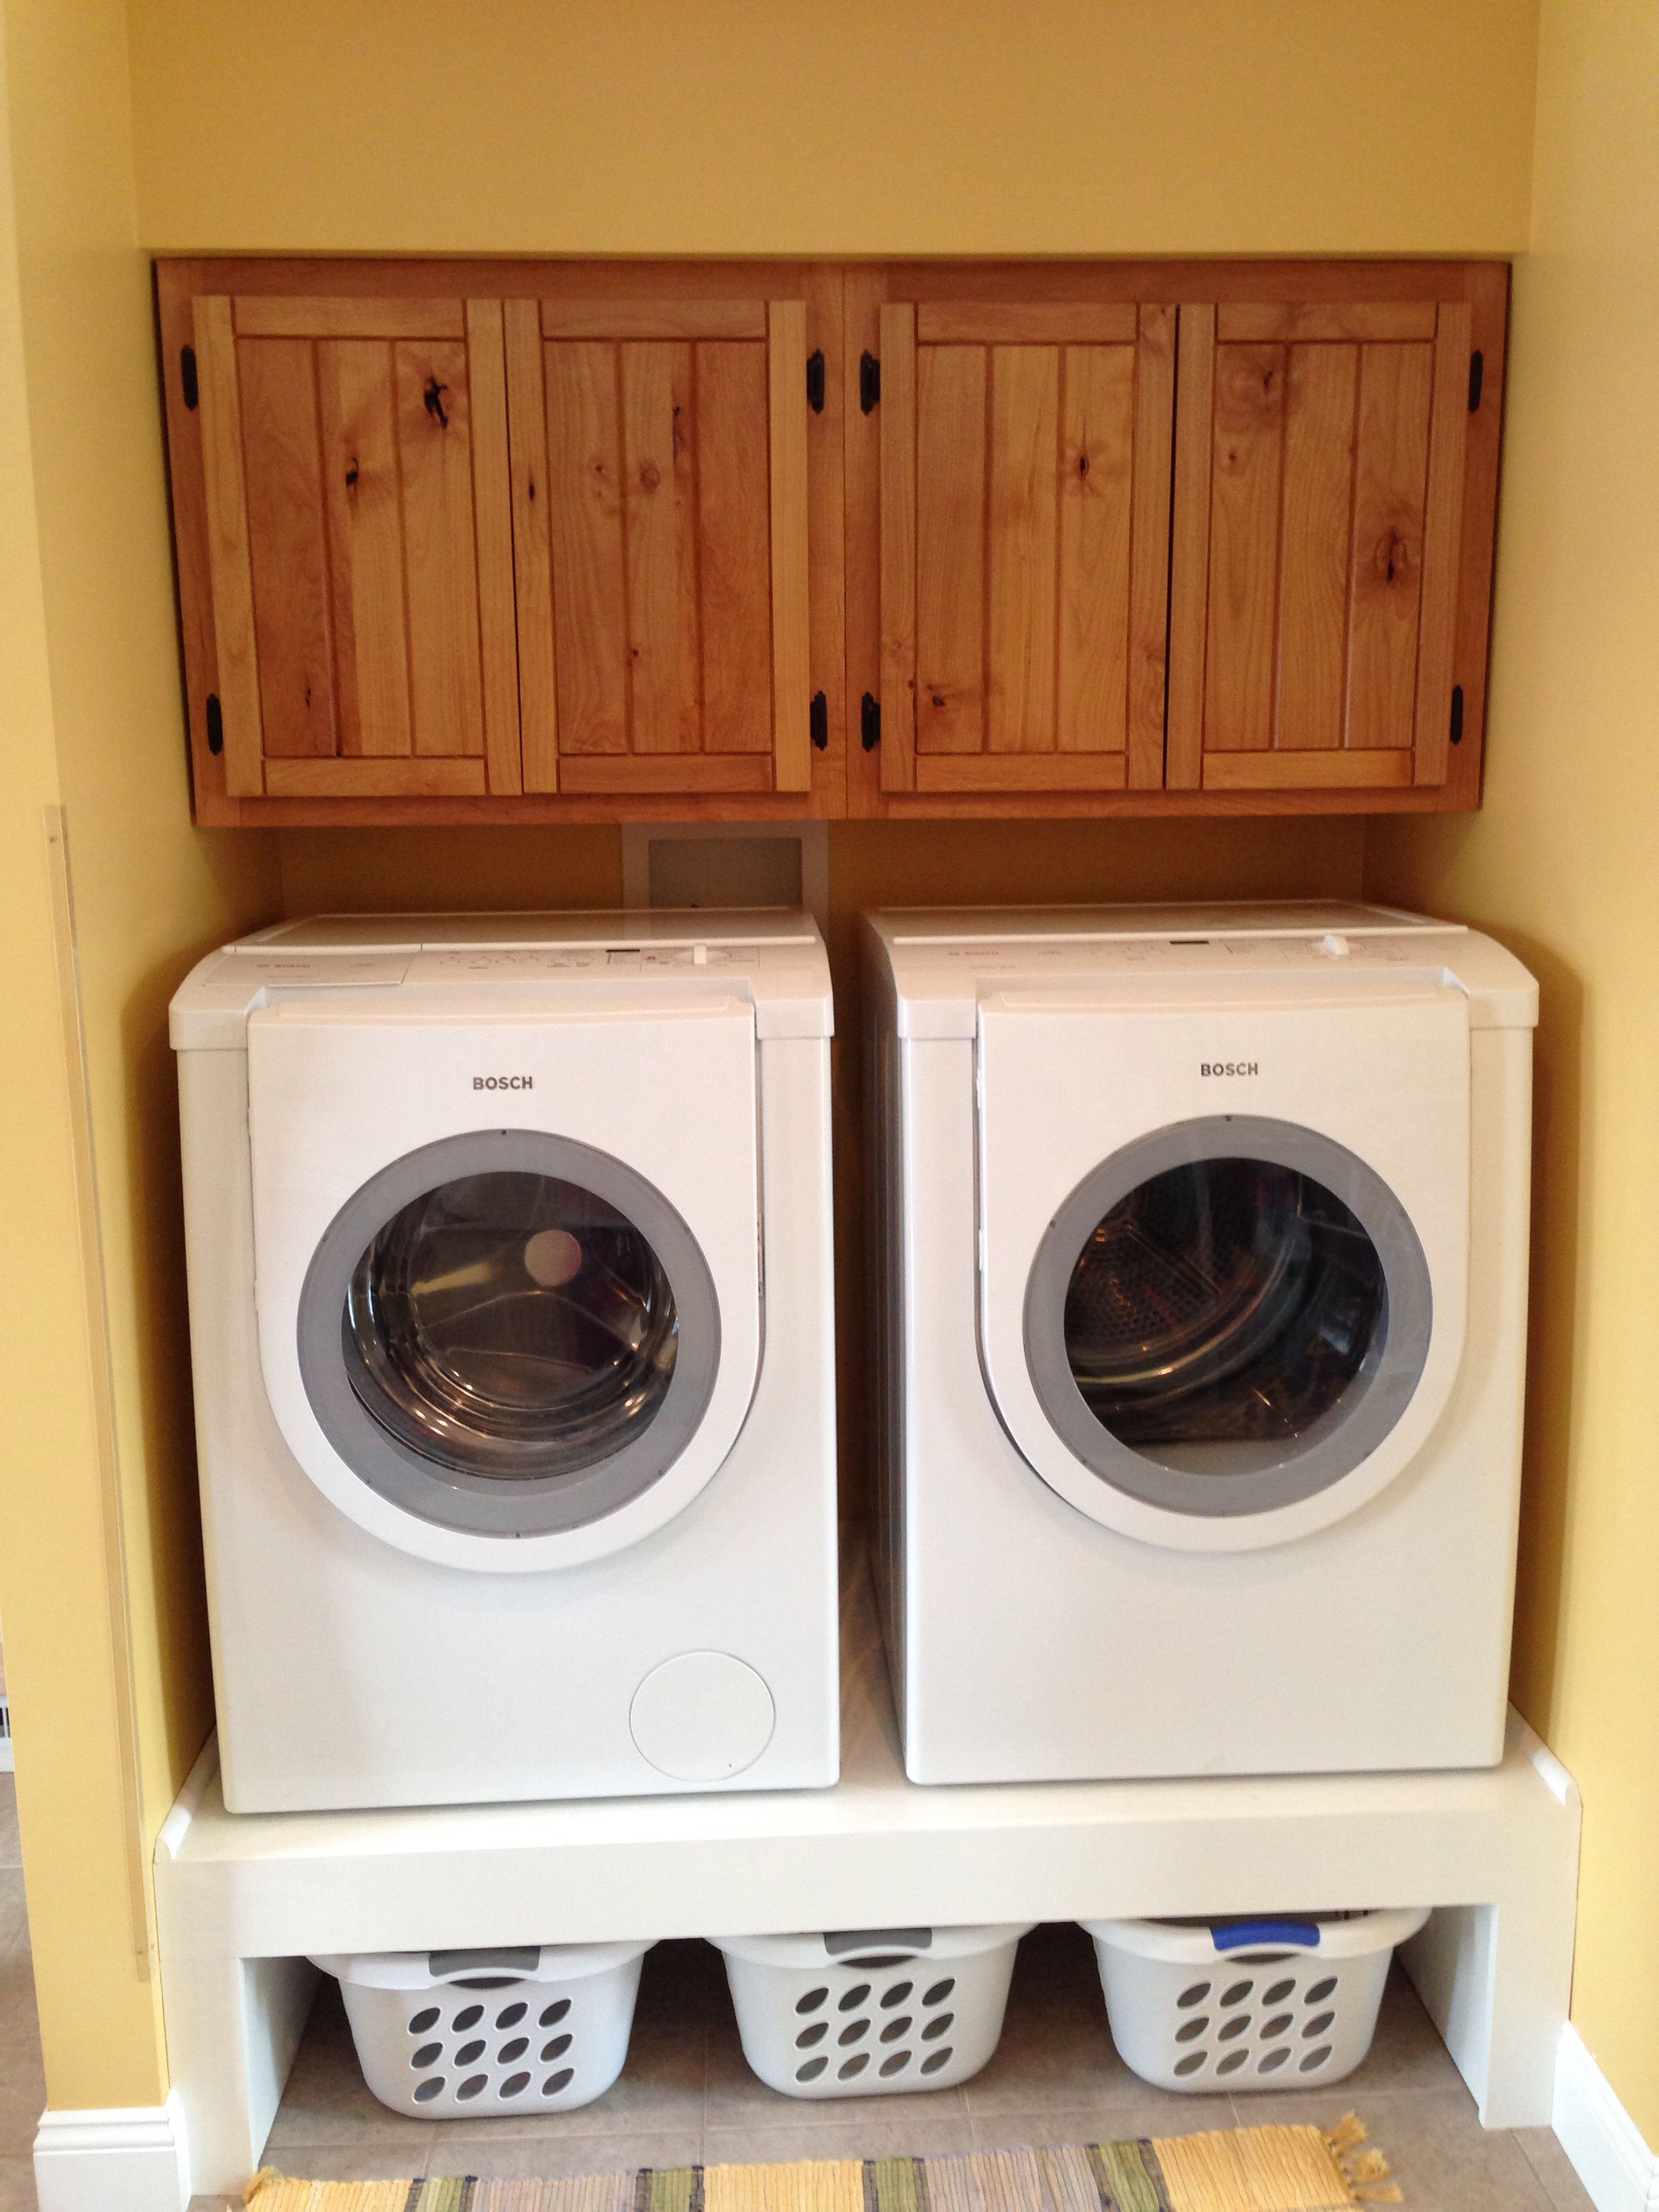 Love My Cabinets And Storage For Clothes Baskets Under The Washer/dryer Part 36